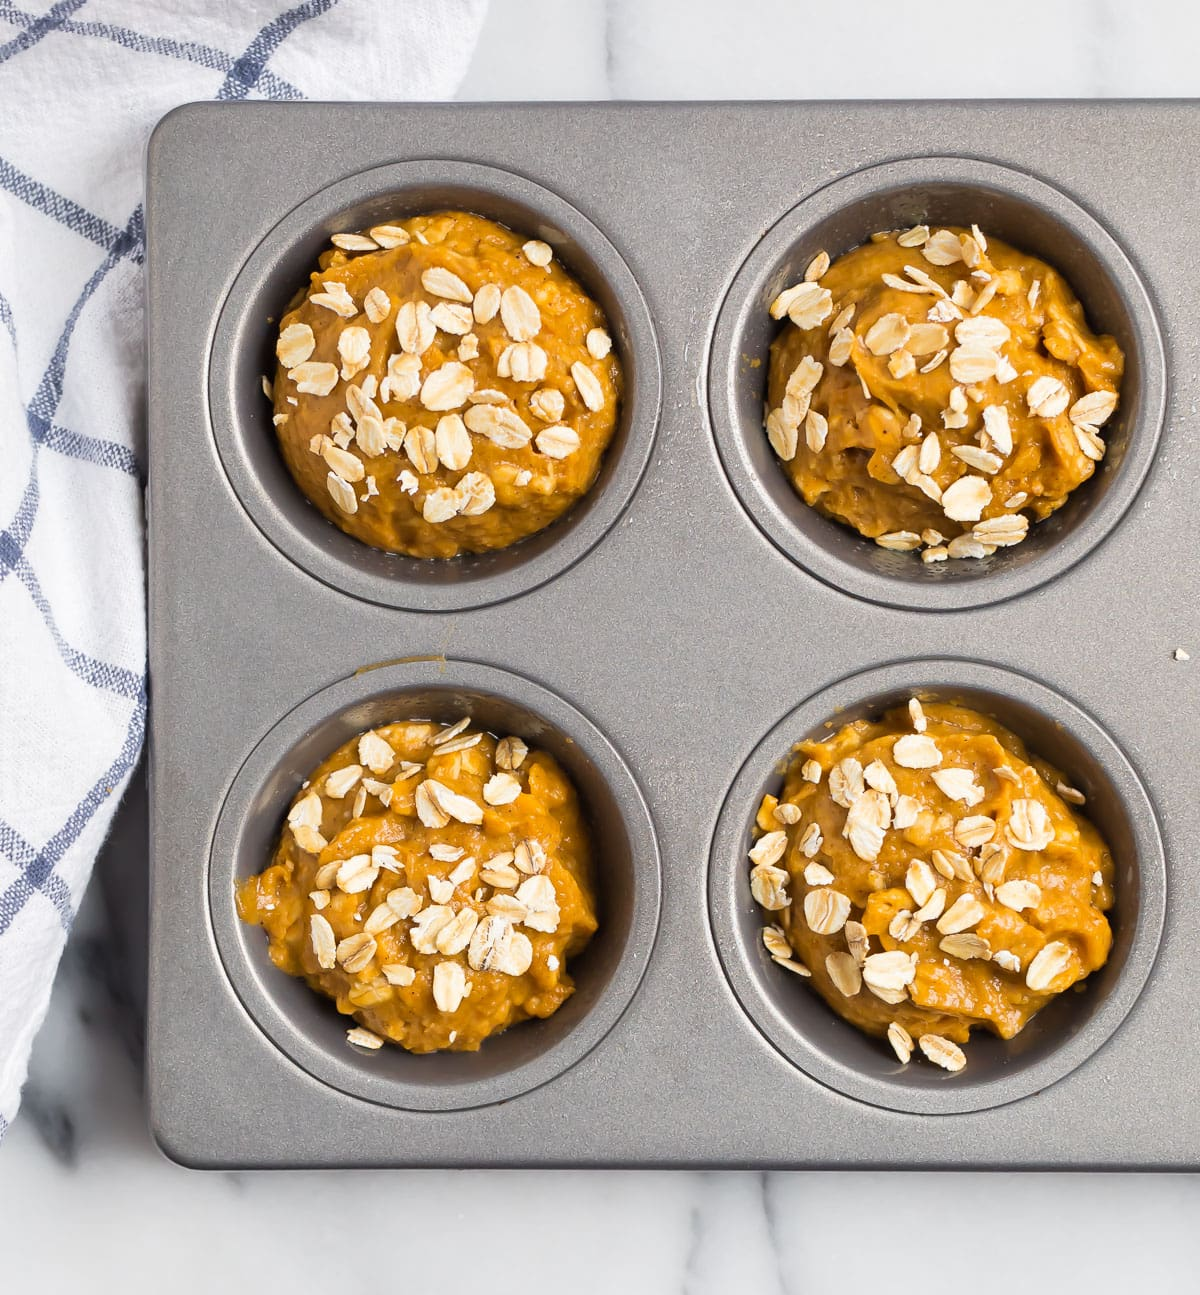 Batter in a muffin pan with oats